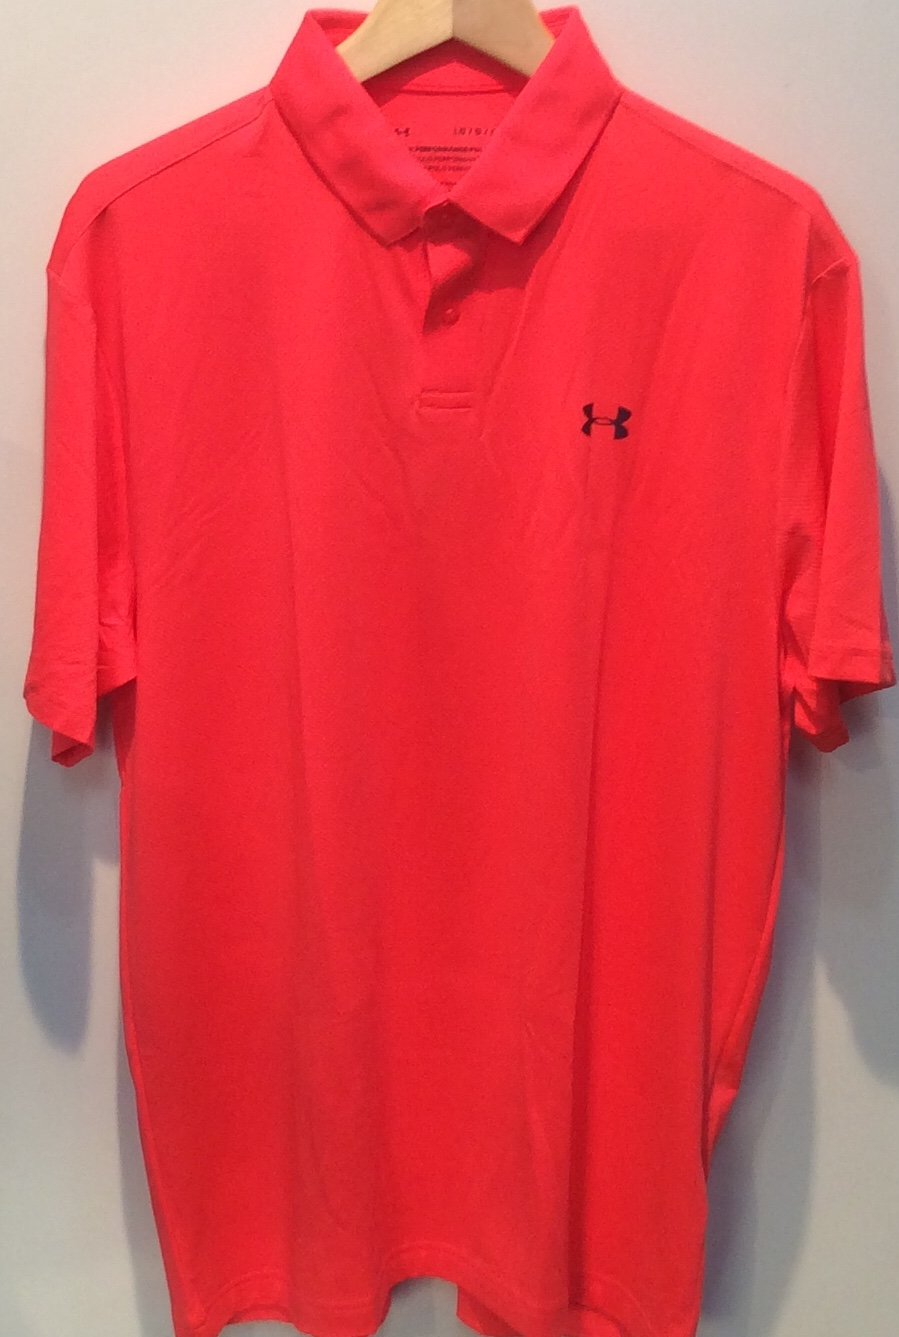 UA Performance Polo - Orange